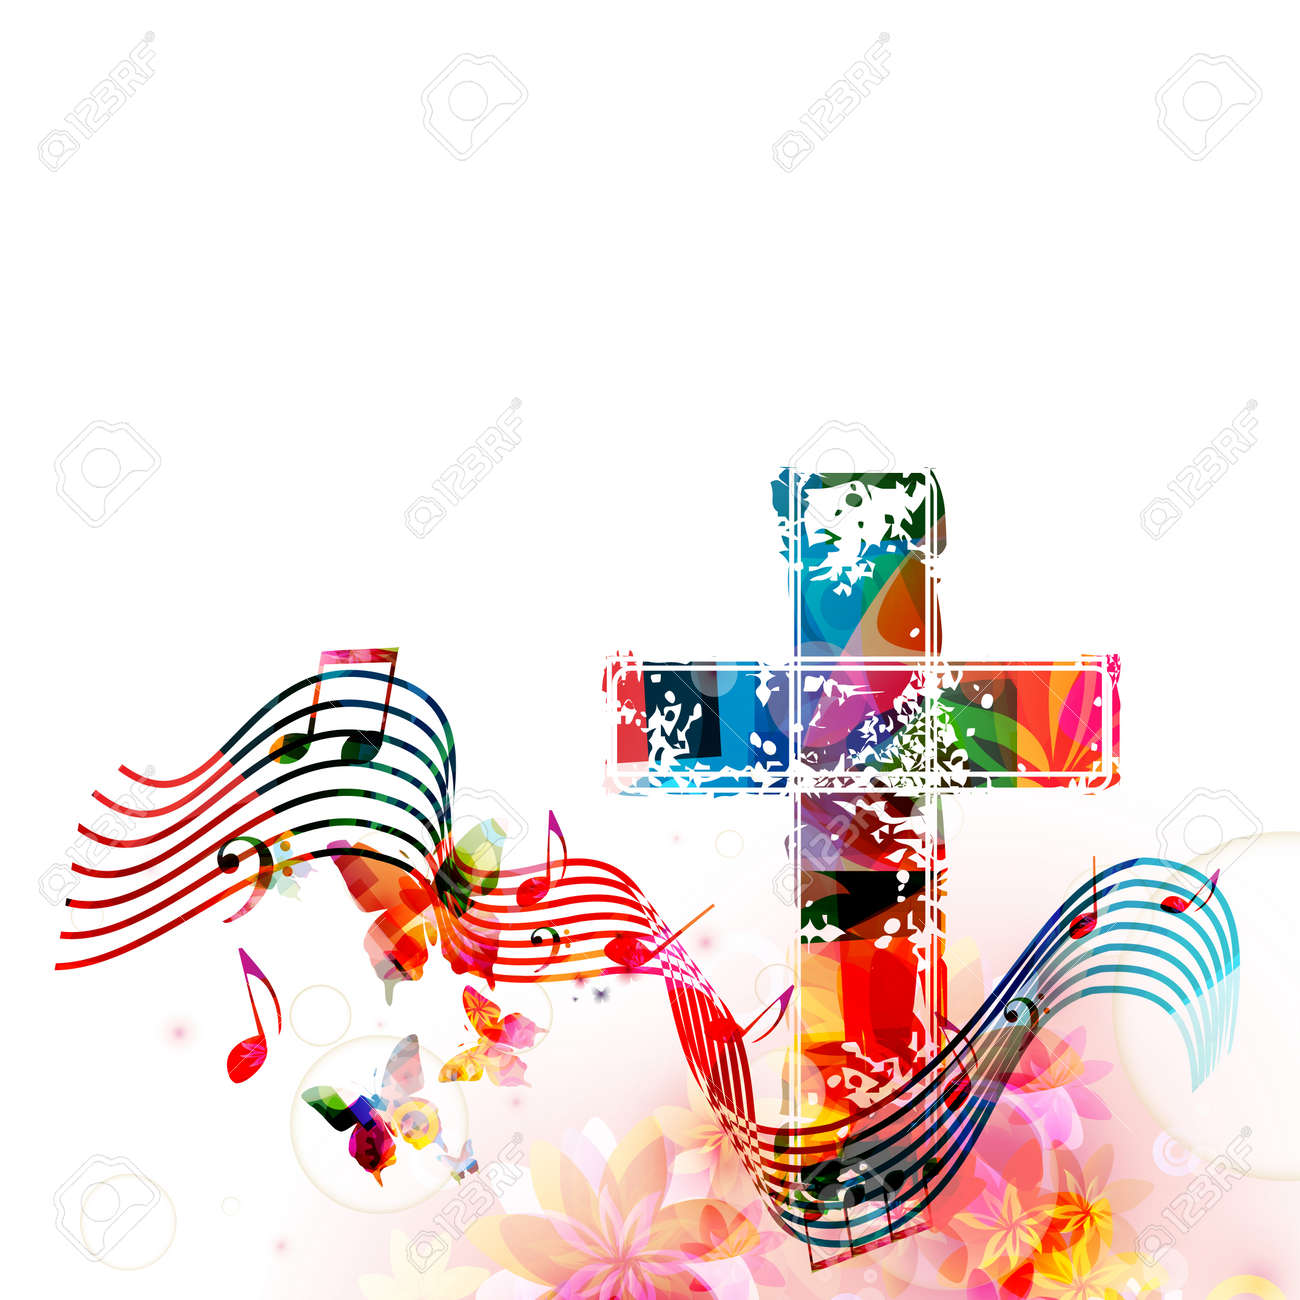 colorful christian cross with stave and music notes isolated rh 123rf com Music Note Icon Music Note Clip Art